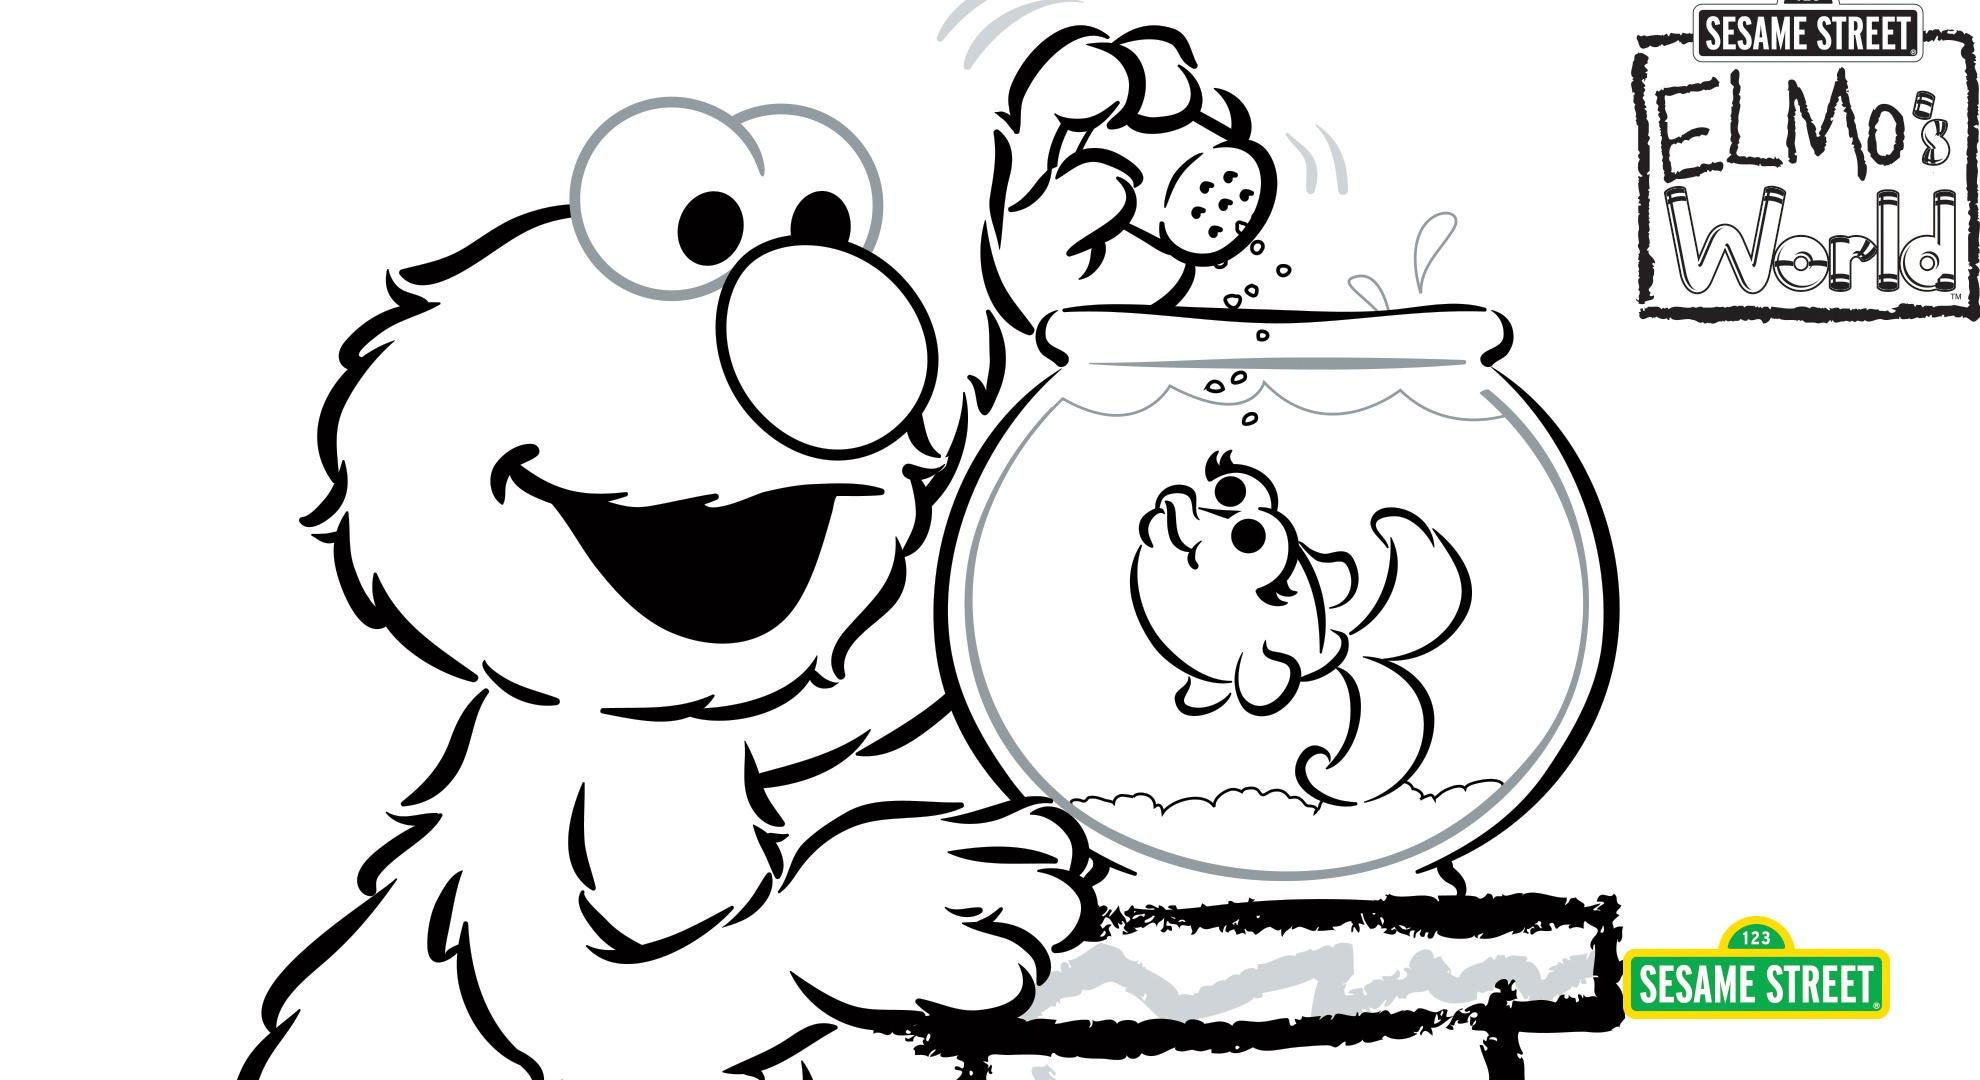 Sesame Street Sign Coloring Page Elmos World Coloring Page Printable Sesame Street Pbs Learningmedia